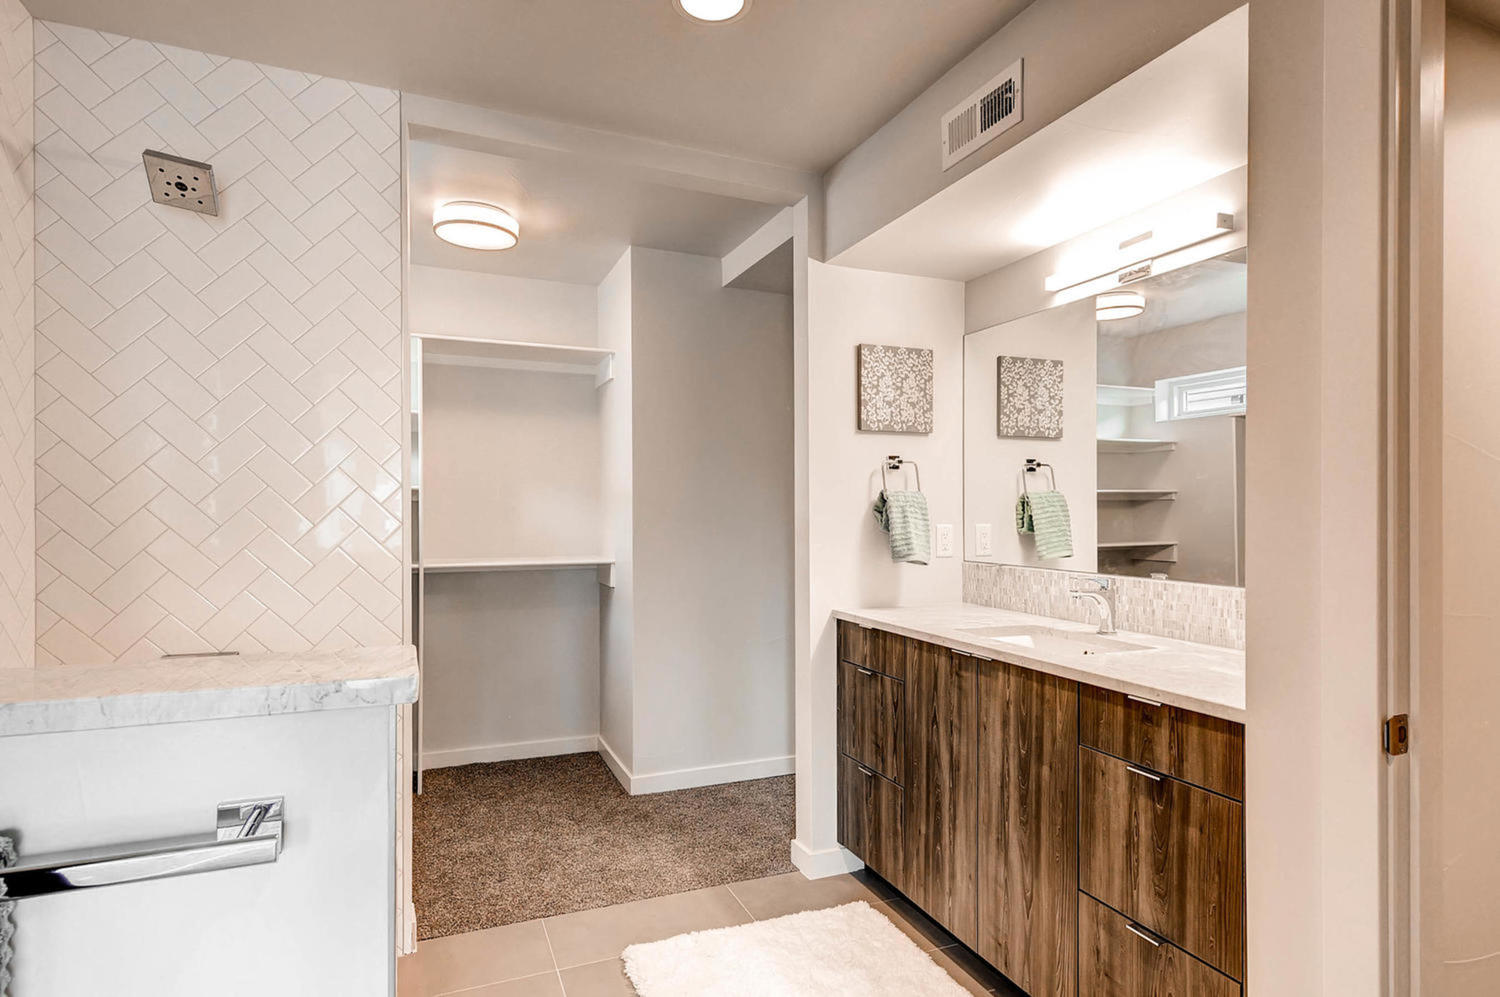 3120 w 27th ave denver co large 020 6 2nd floor bathroom 1500x997 72dpi